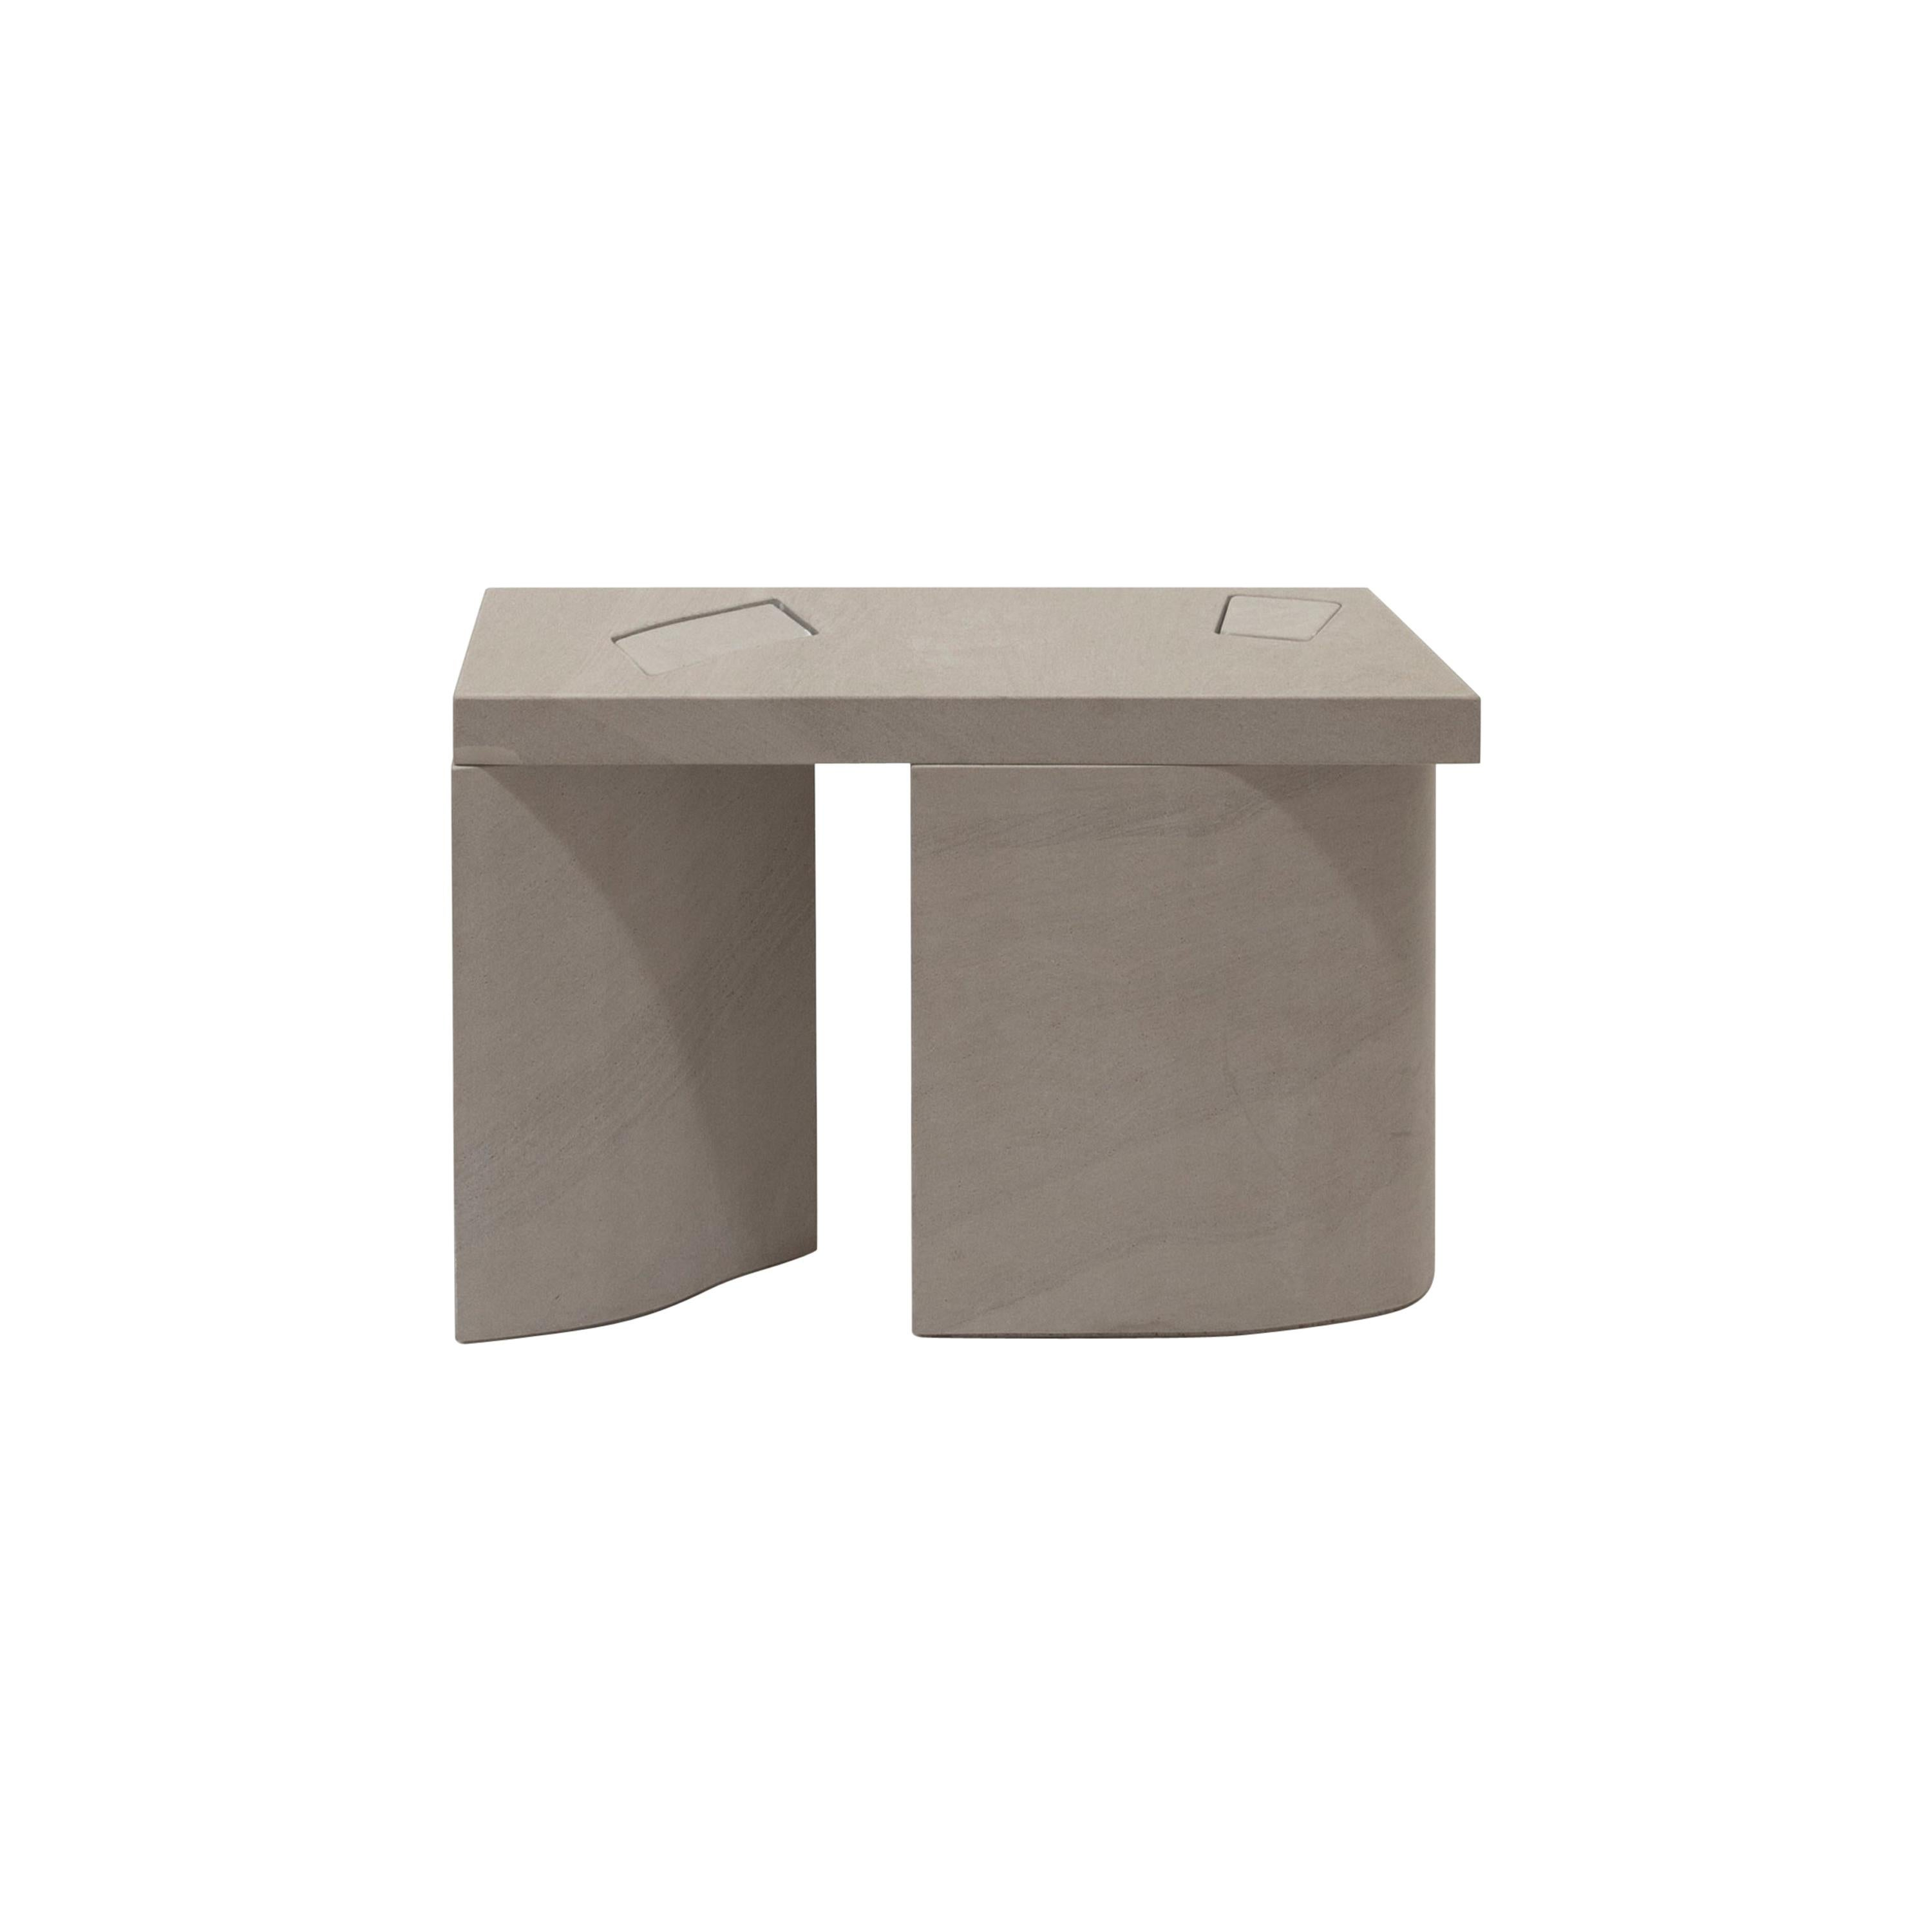 Unsighted Table 2 by Bahraini-Danish in Giallo Avorio Marble